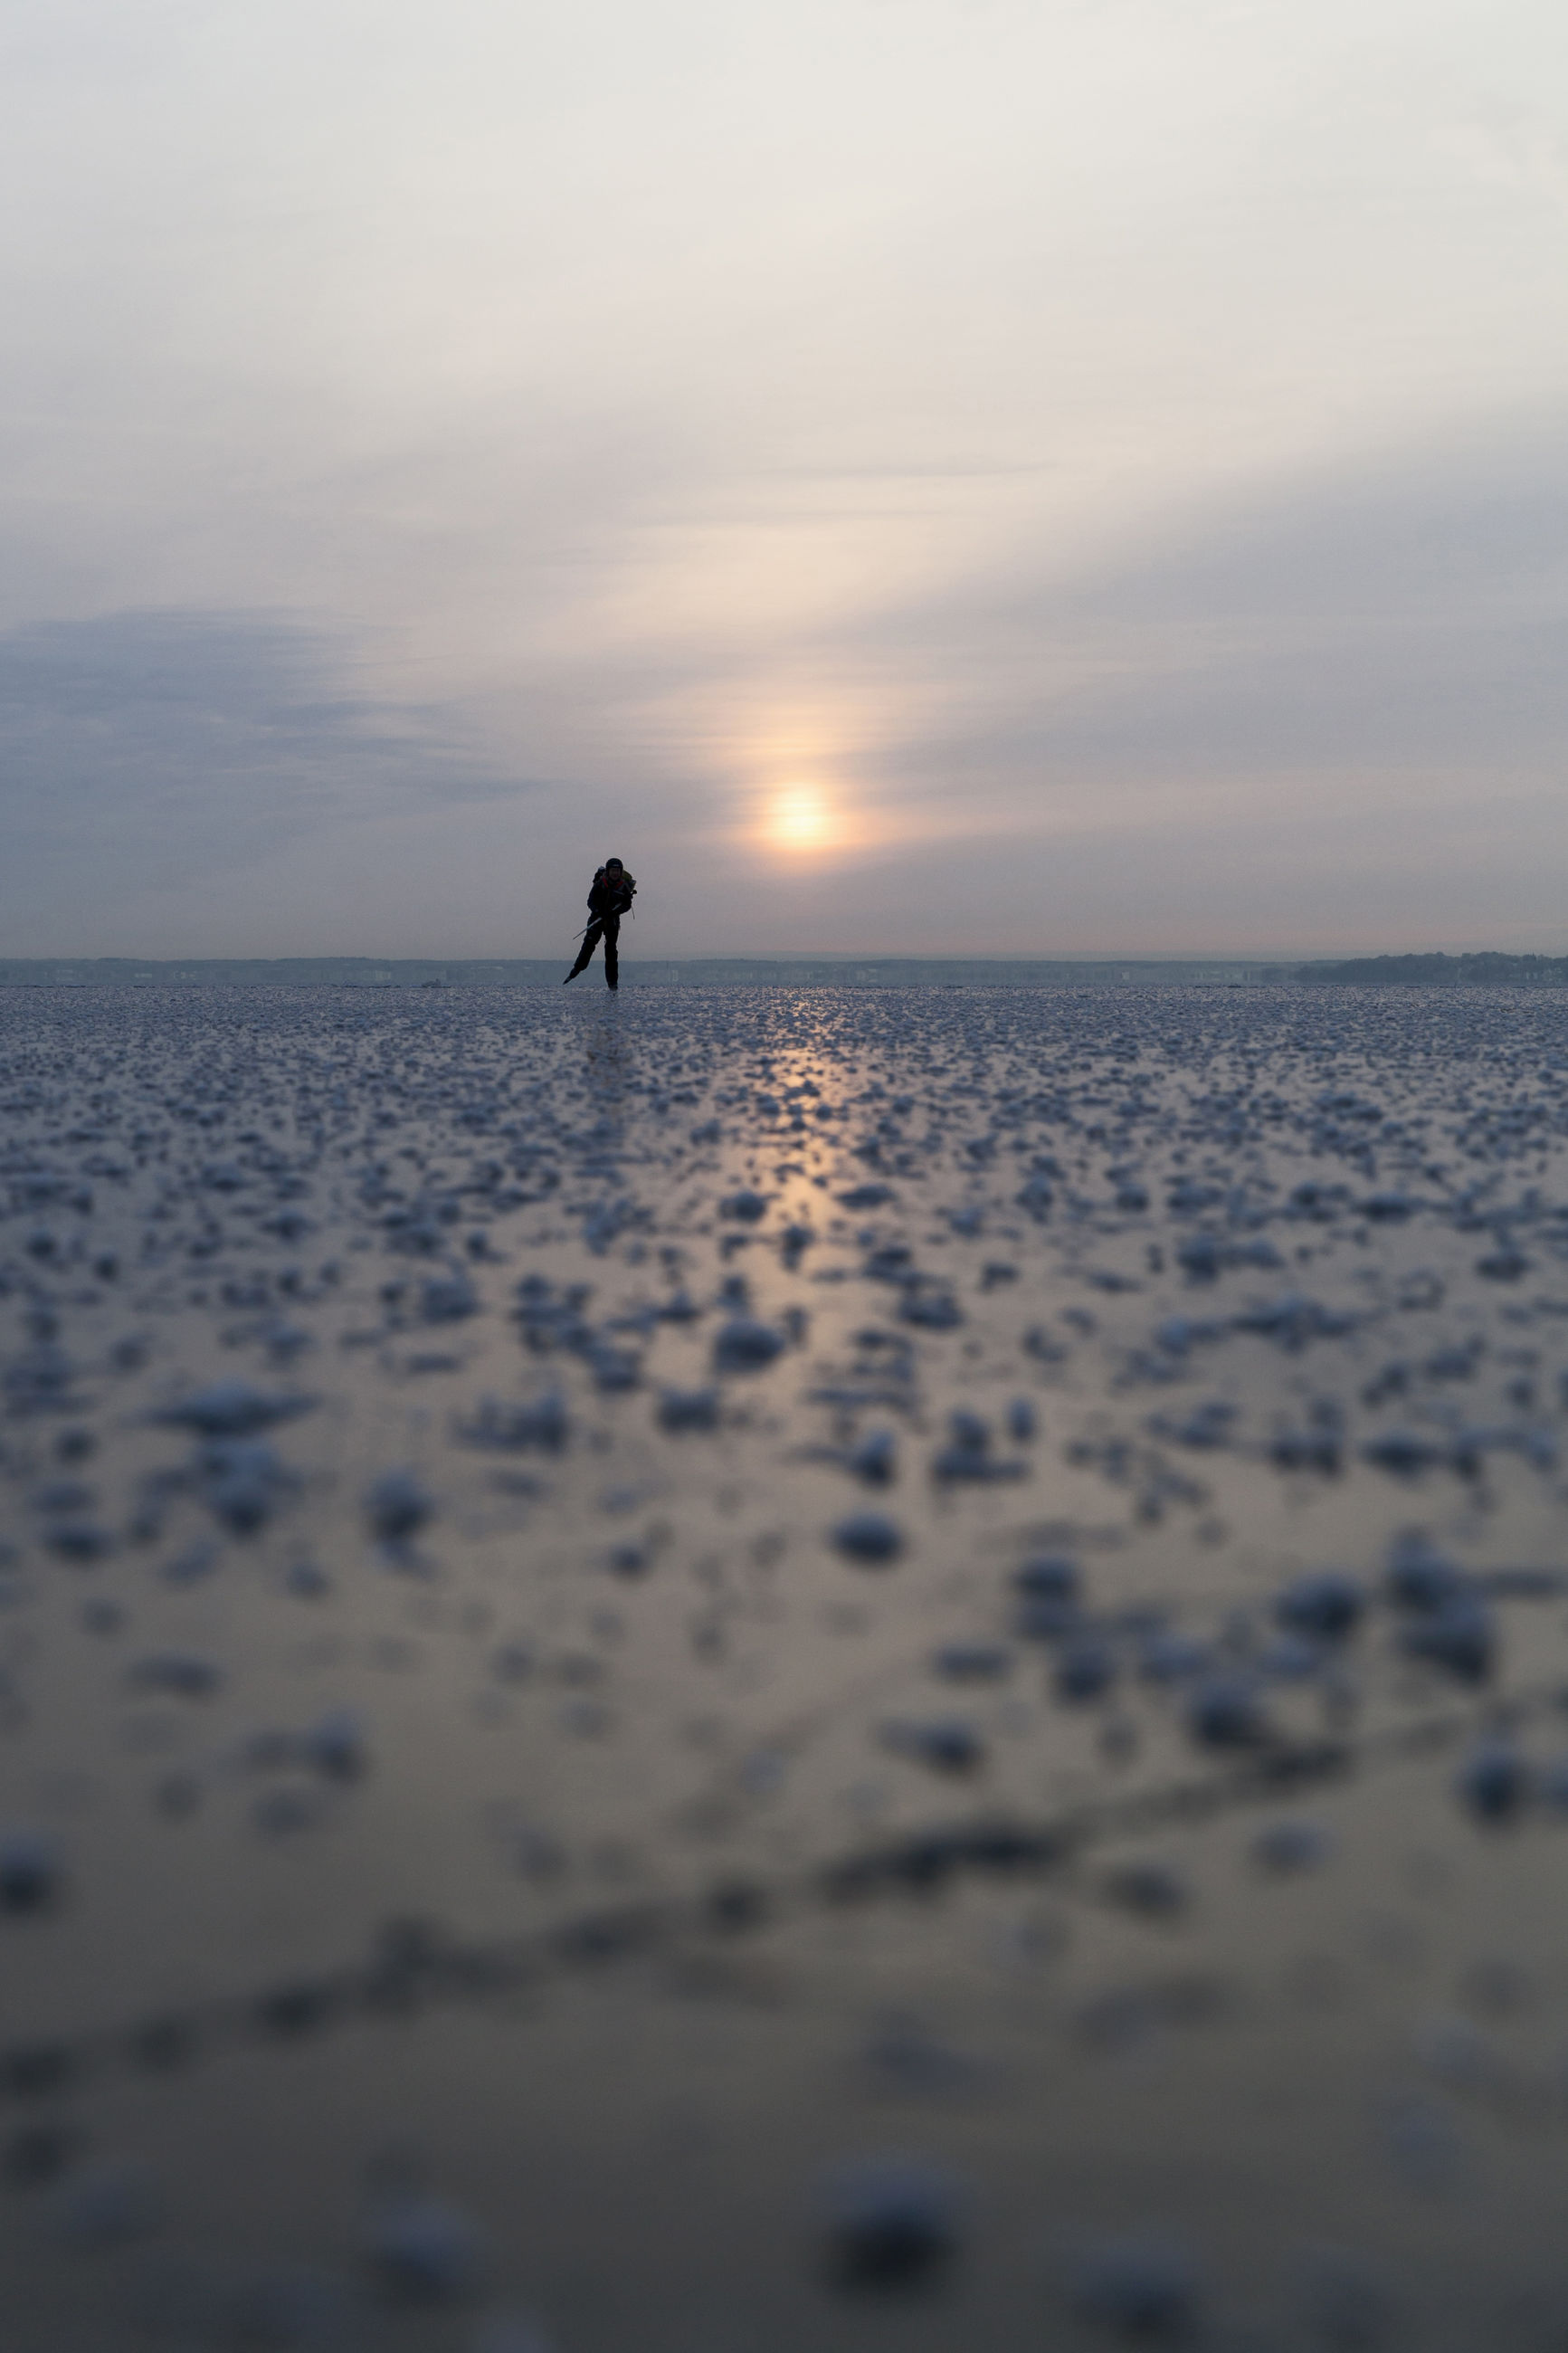 SILHOUETTE PERSON ON SHORE AGAINST SKY DURING SUNSET